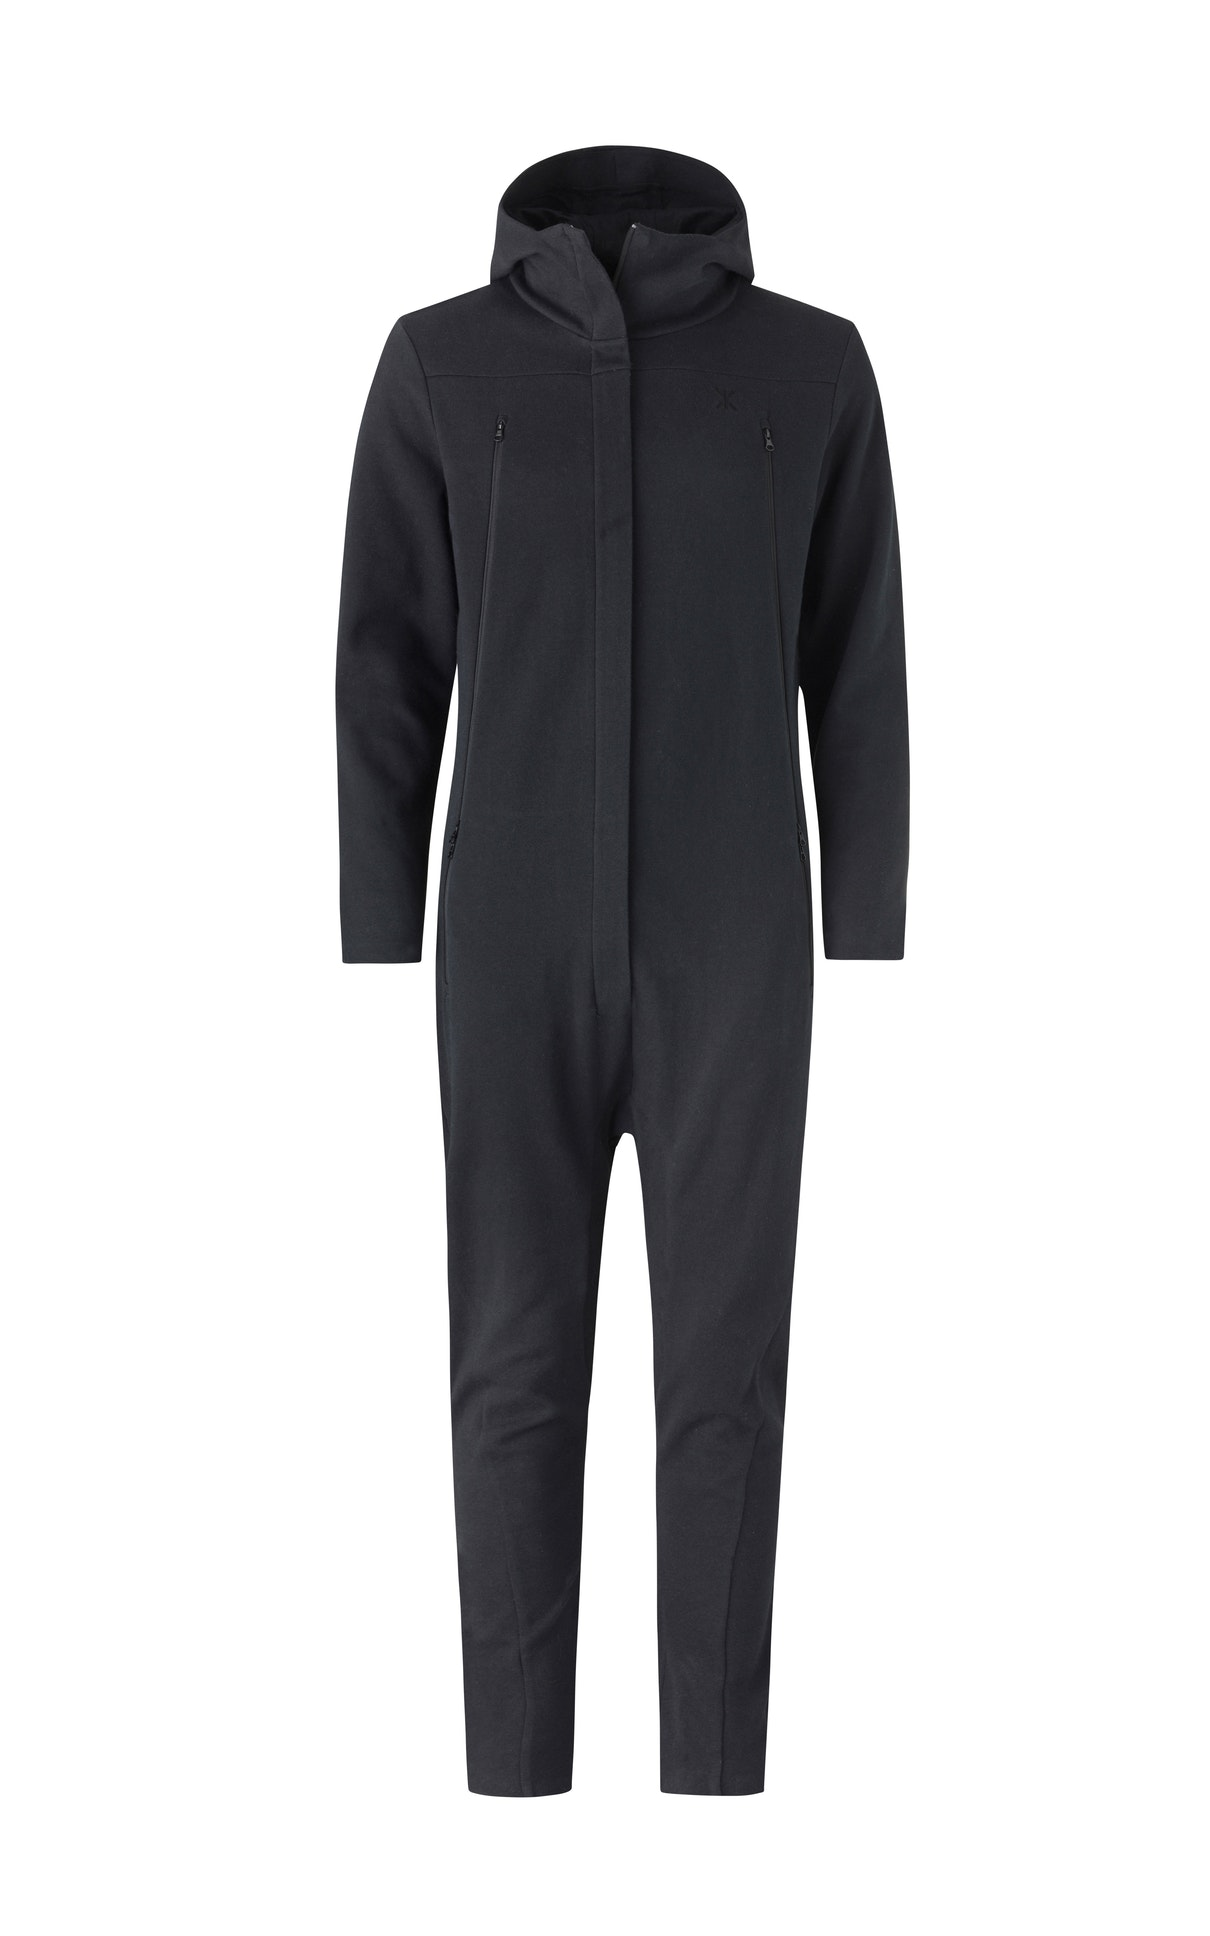 Drift Jumpsuit Black A smarter, more fitted version of our classic styles. This jumpsuit in black features a hidden front zipper with magnetic fastening and ventilated hand pockets.